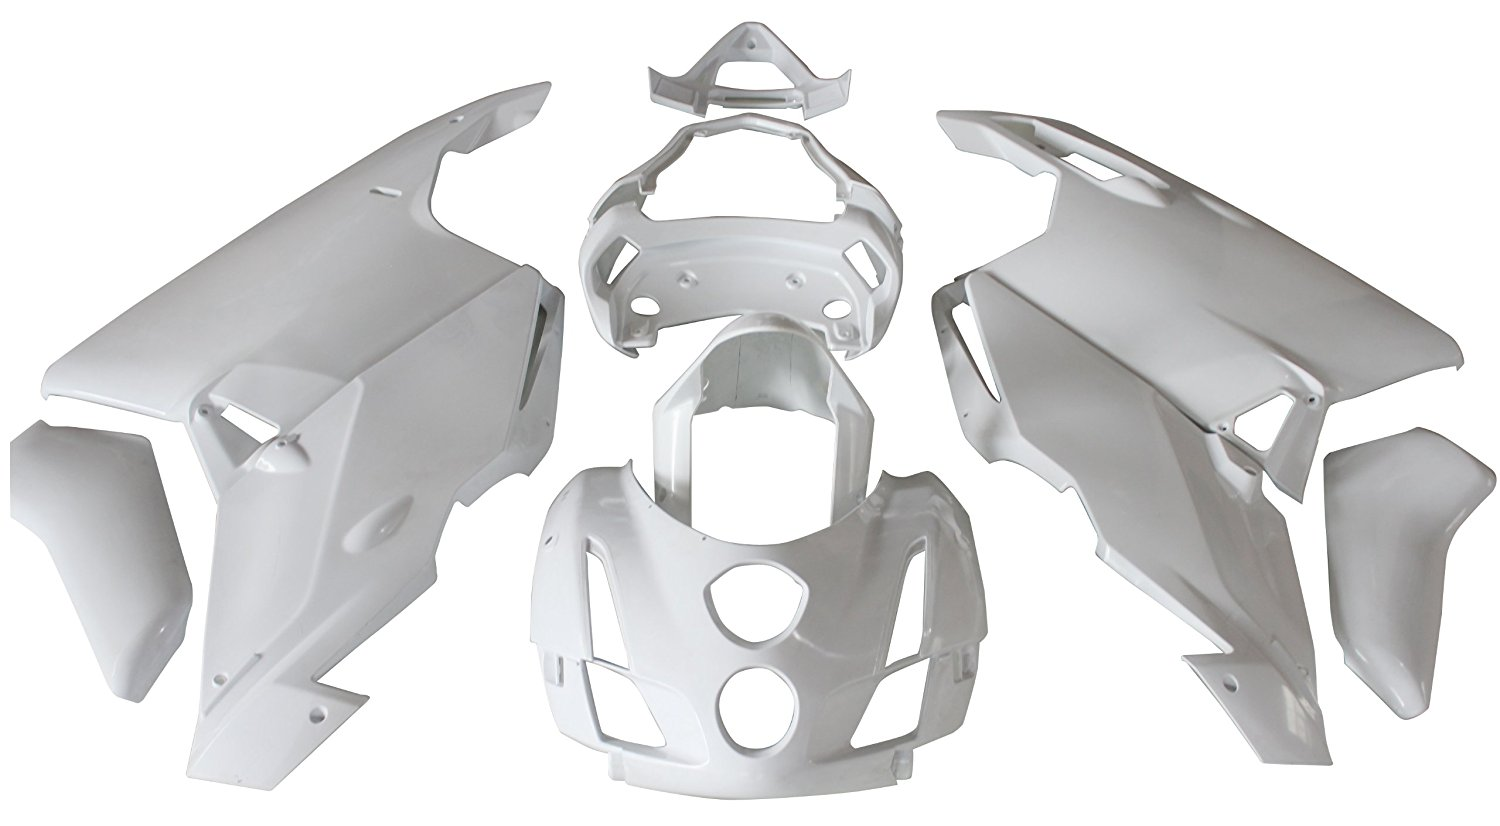 Fairing Kit Bodywork For Ducati 999 / 749 2003 2004 03 04 ABS Plastic Unpainted Fairings Cowl Case Motorcycle custom design monster color top grade quality injection mold fairings bodywork for ducati 999 749 03 04 kits